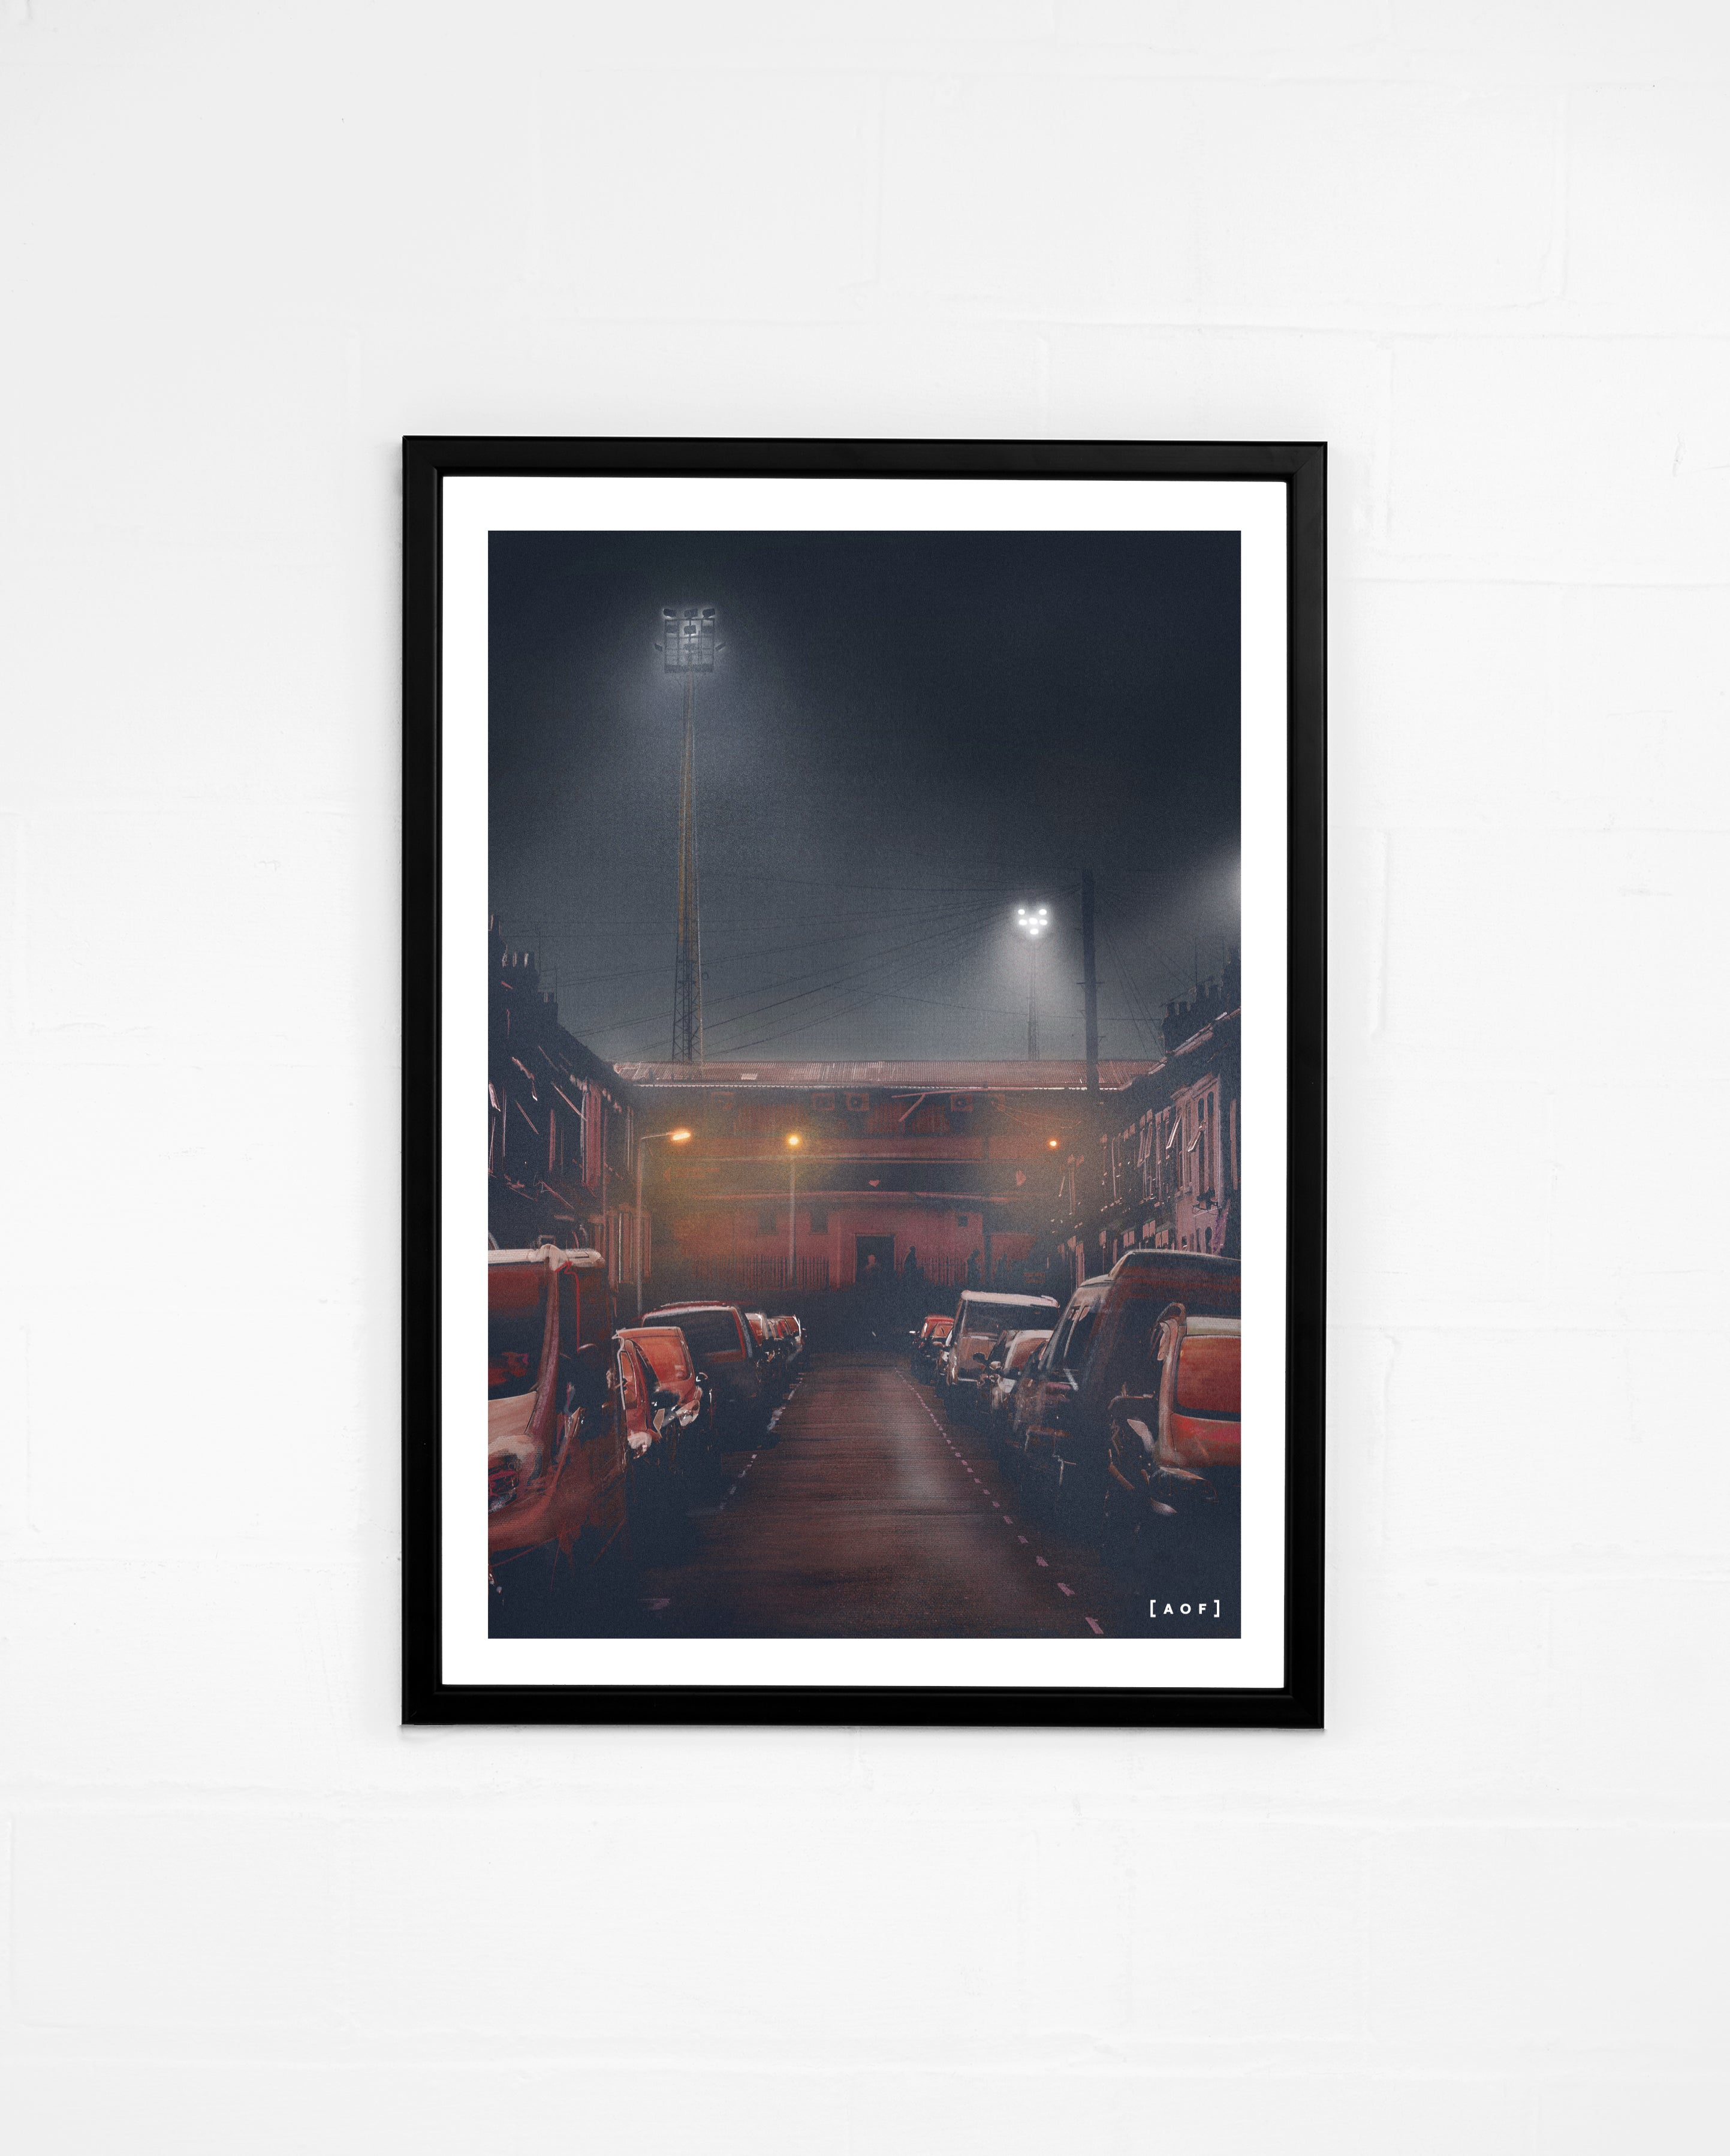 Kenilworth Road by Night - Print or Canvas